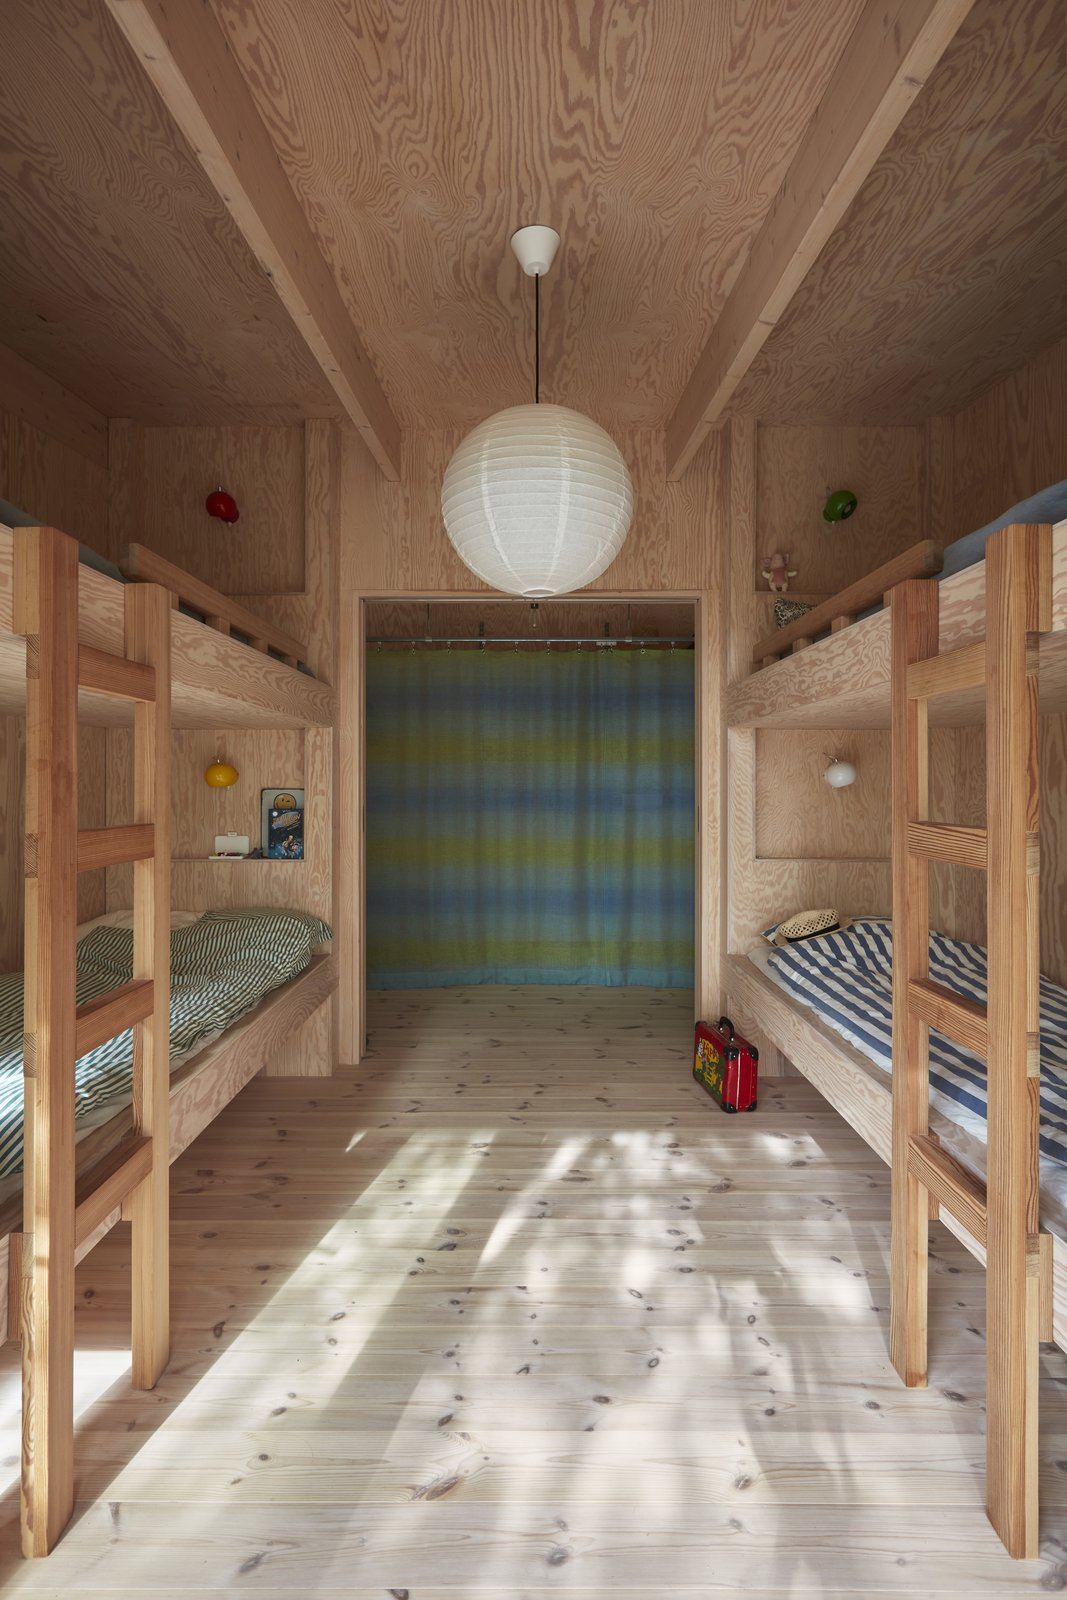 Kids, Bedroom, Bunks, Bed, Neutral, and Light Hardwood The built-in plywood bunks in the children's room were designed by STEG.  Best Kids Bunks Neutral Photos from A Pint-Sized, No-Frills Summerhouse Rises From the Rocks on a Swedish Island